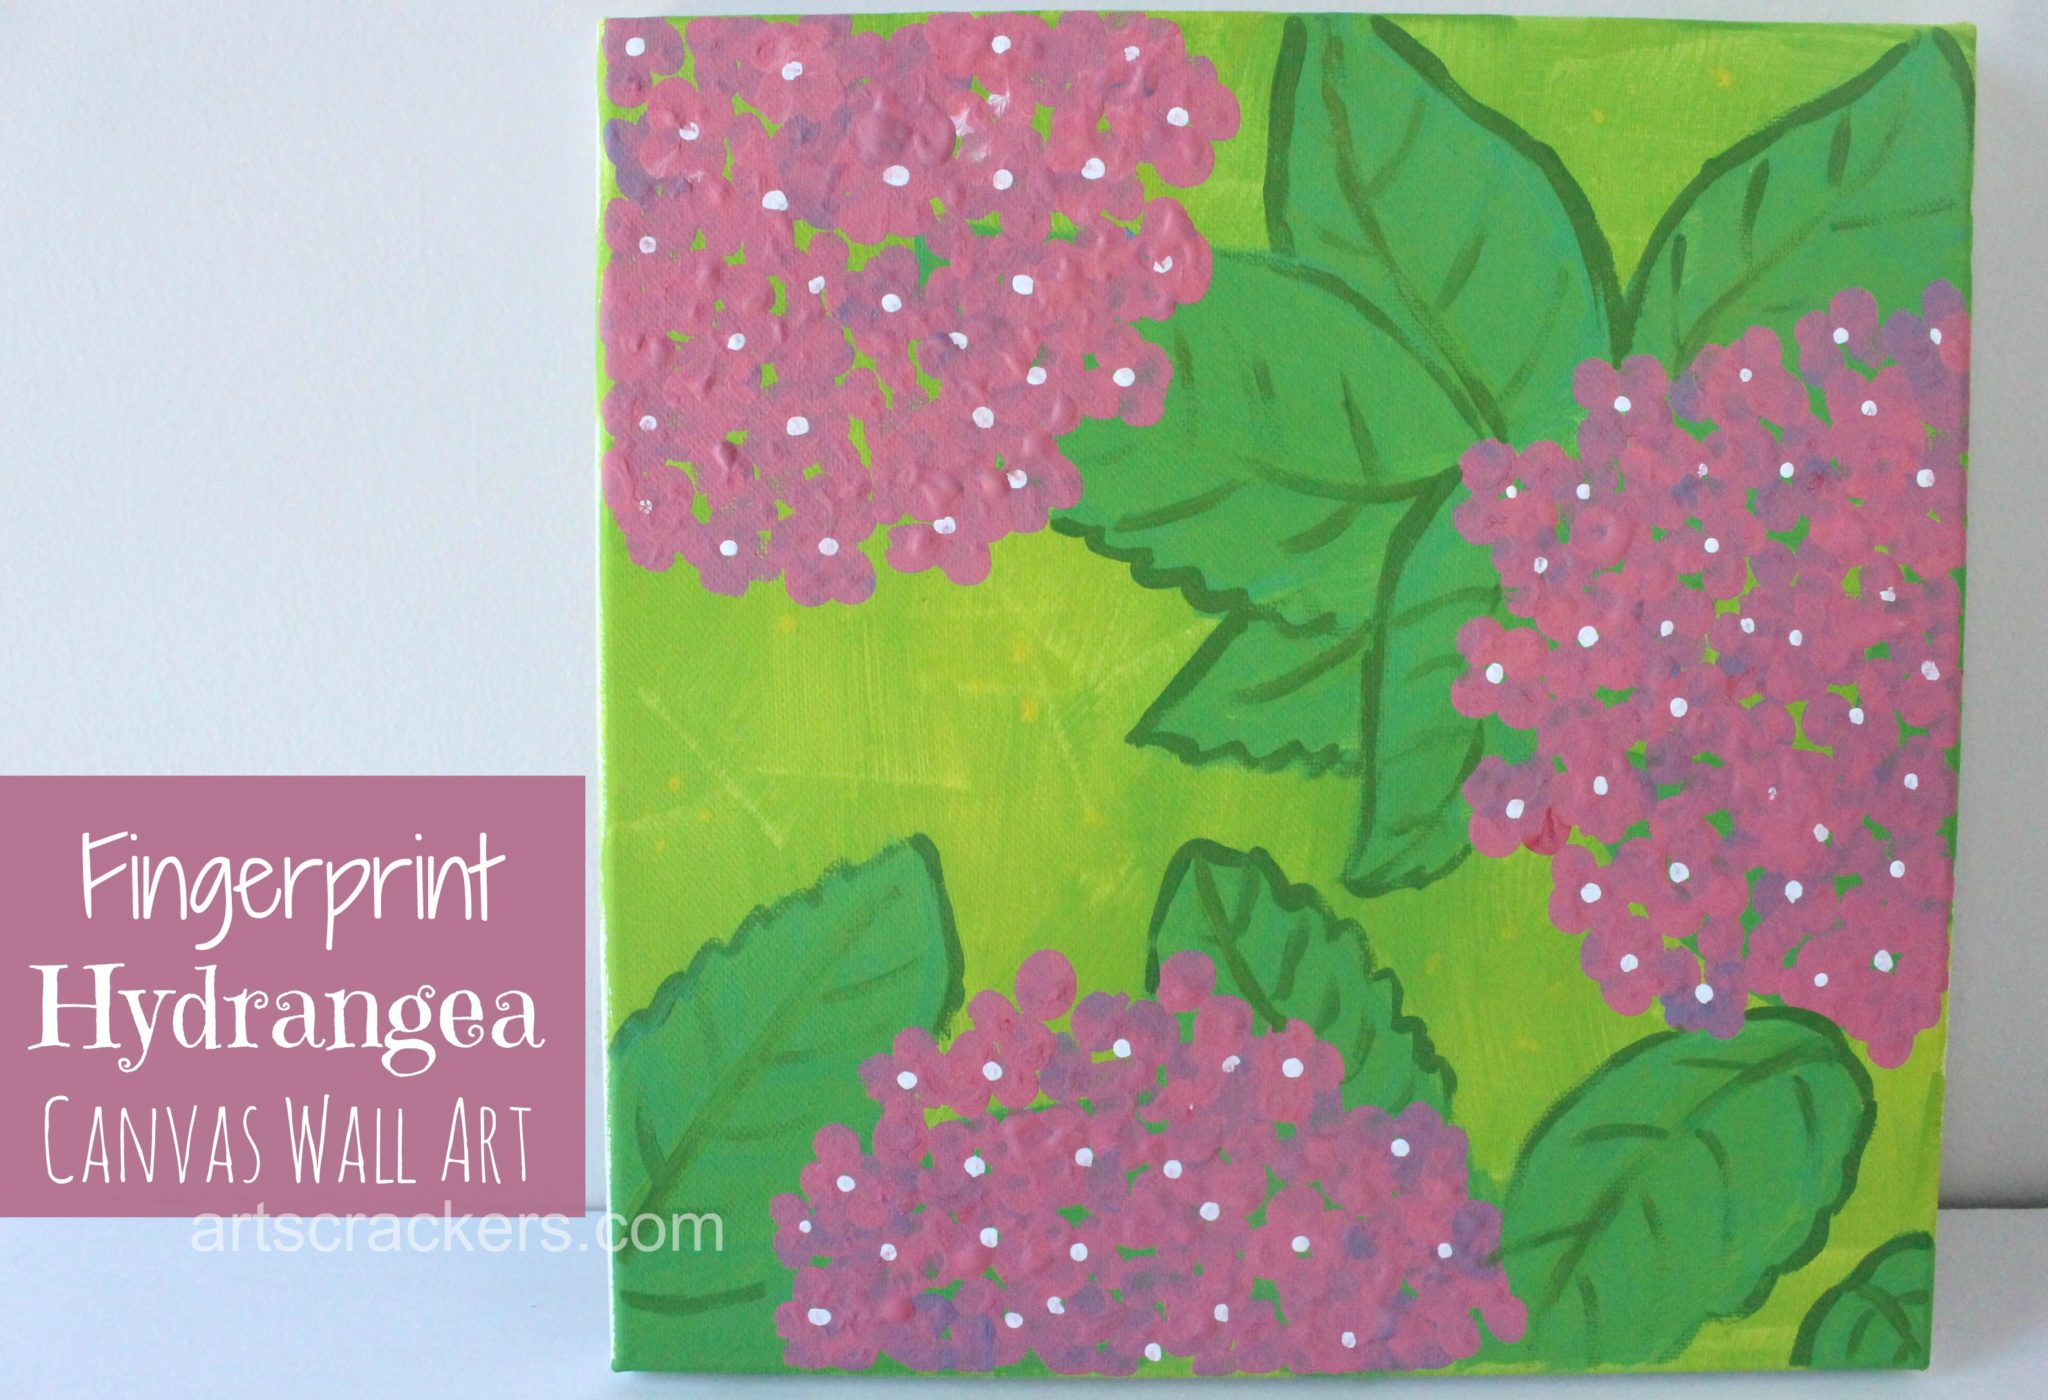 Fingerprint Hydrangea Canvas Wall Art. Click the picture to view the tutorial.